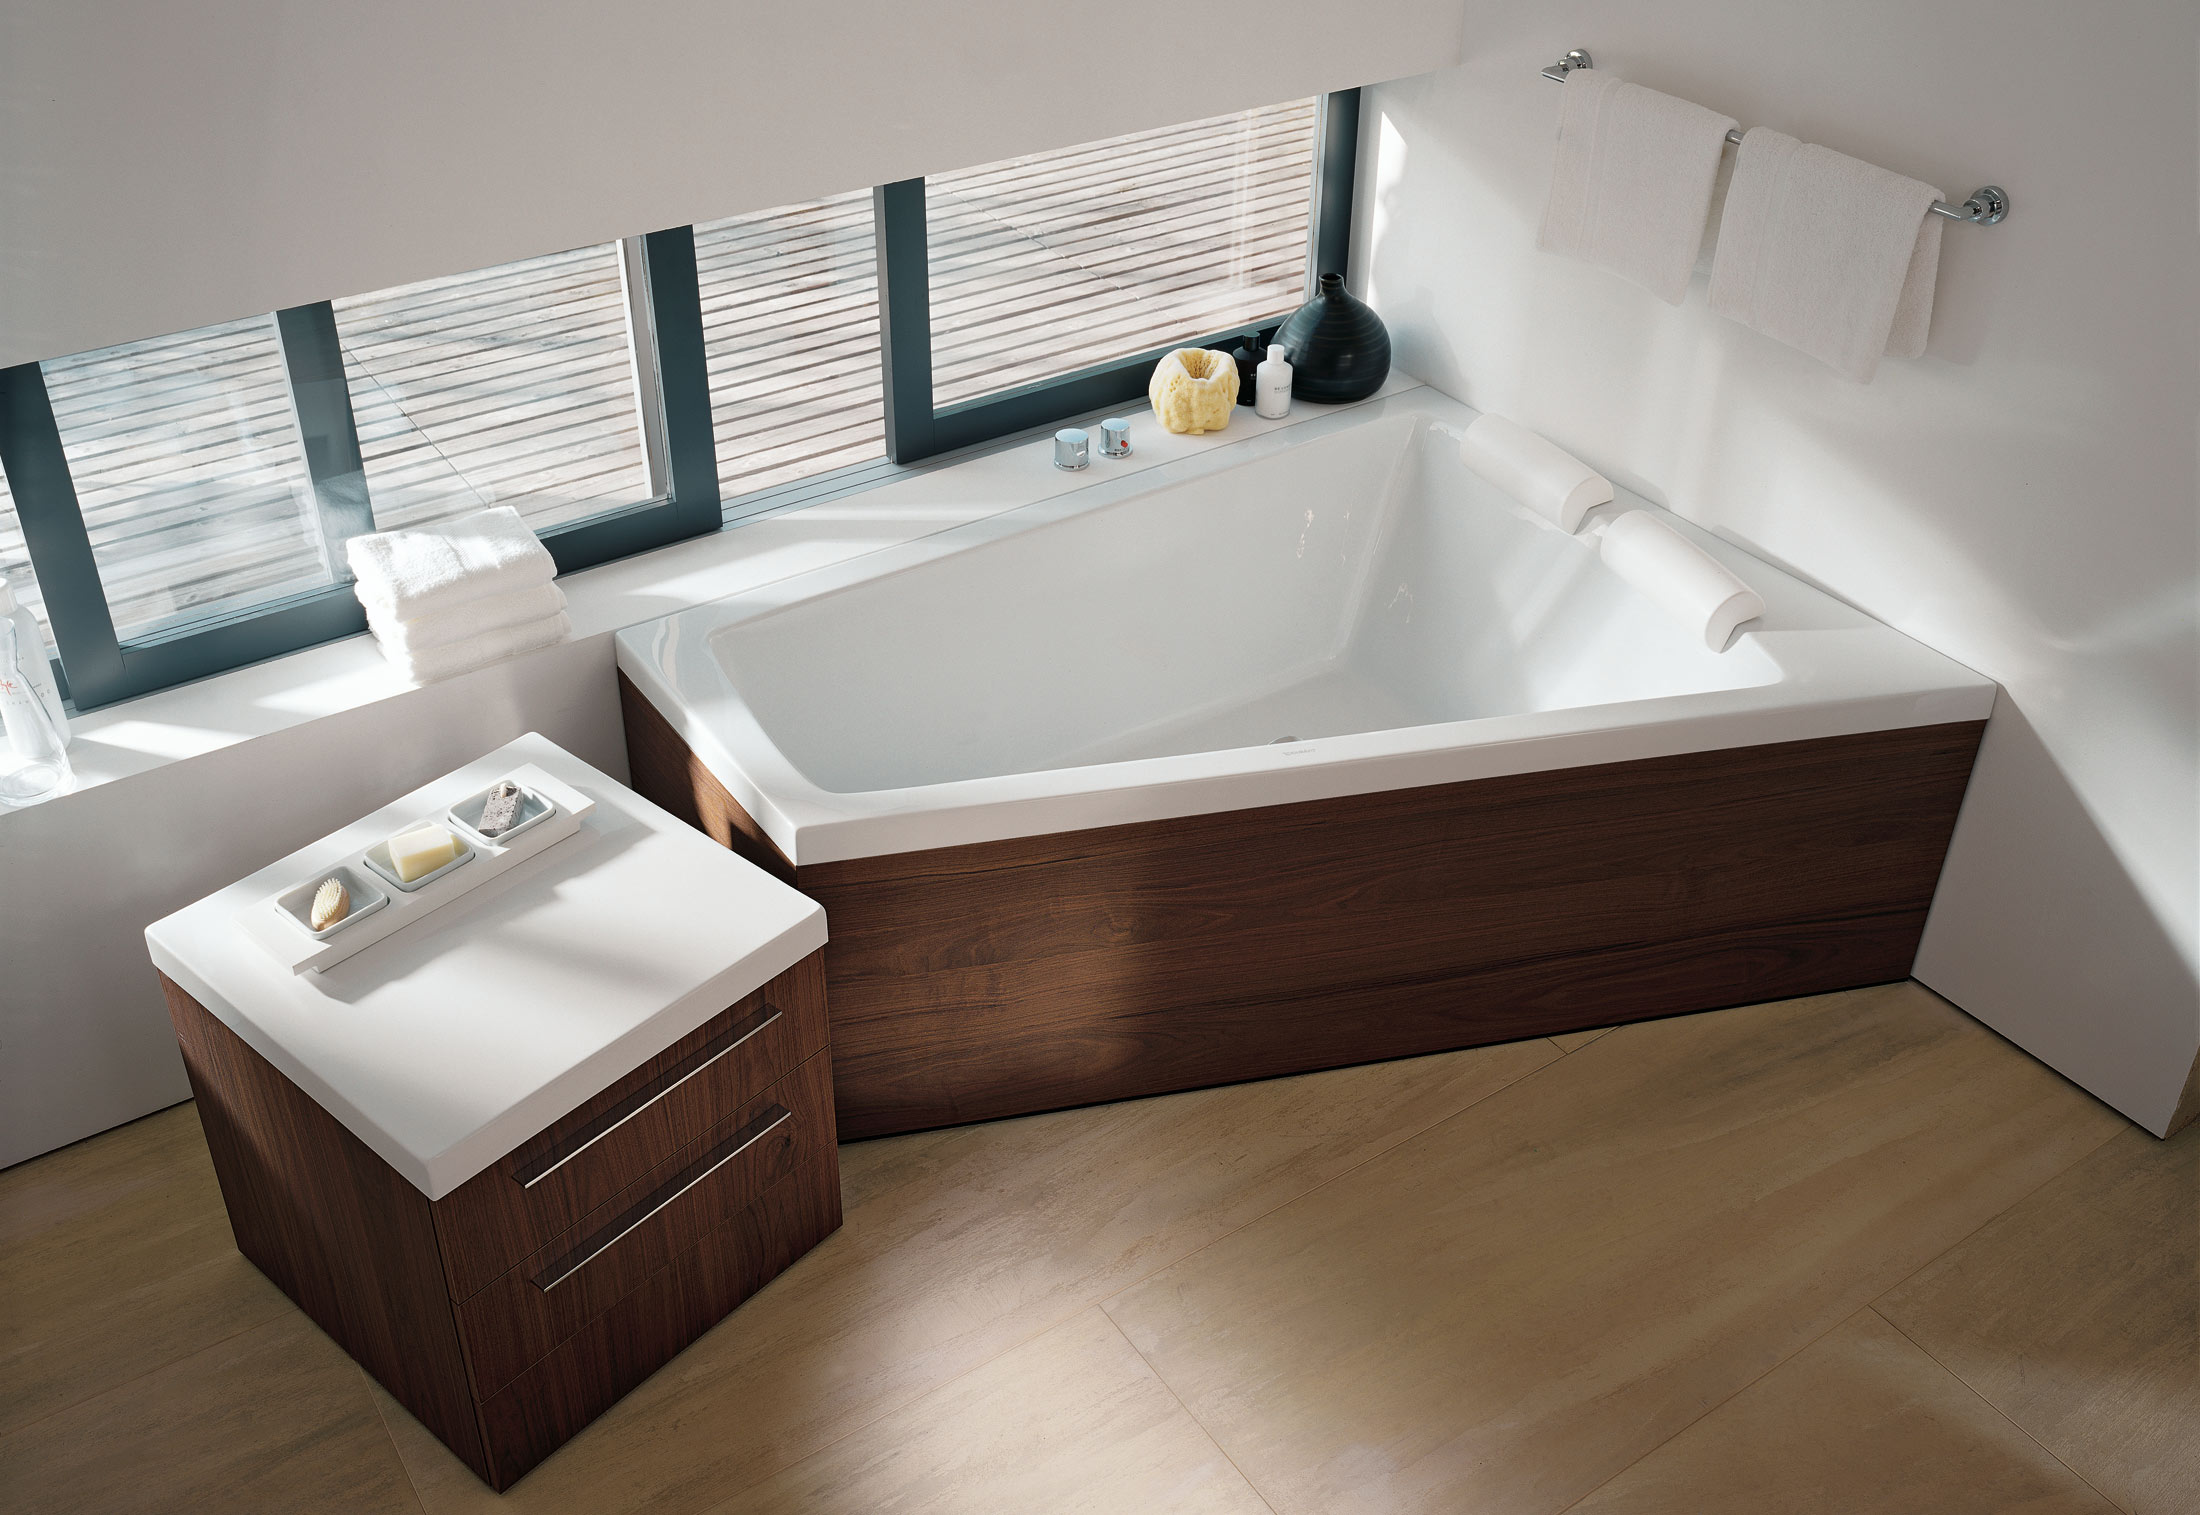 paiova wanne von duravit stylepark. Black Bedroom Furniture Sets. Home Design Ideas